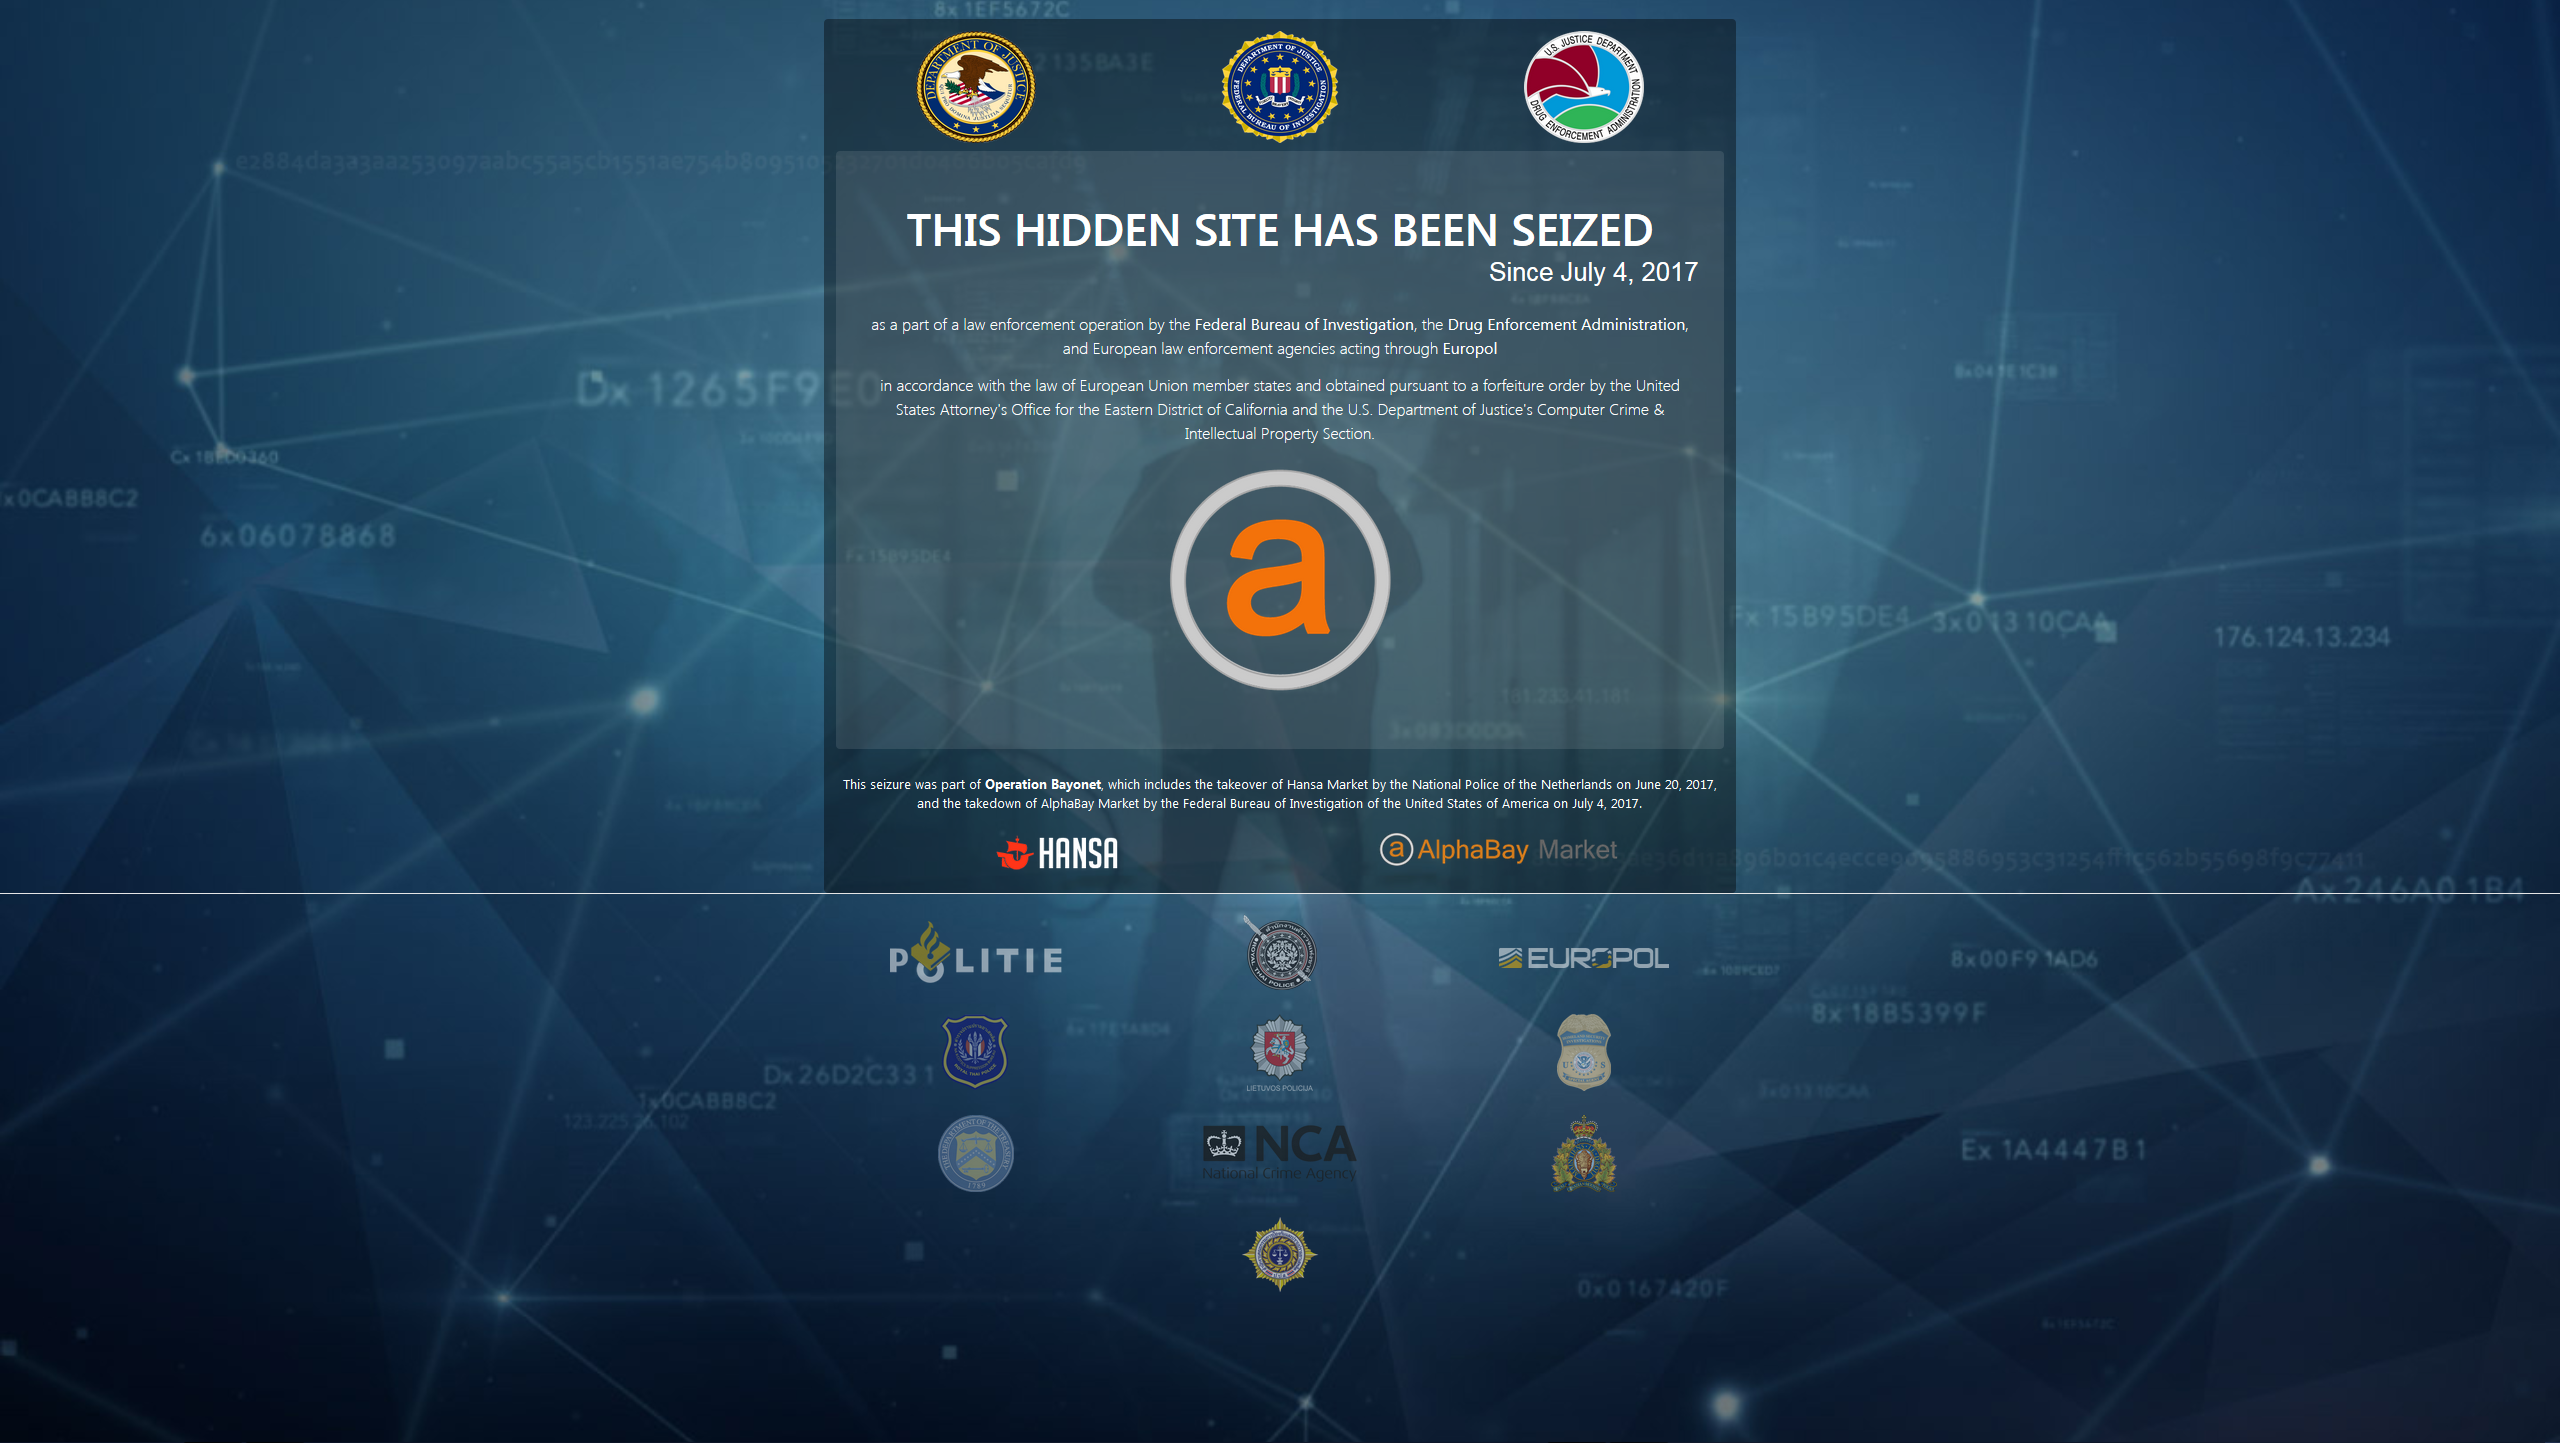 AlphaBay - Wikipedia